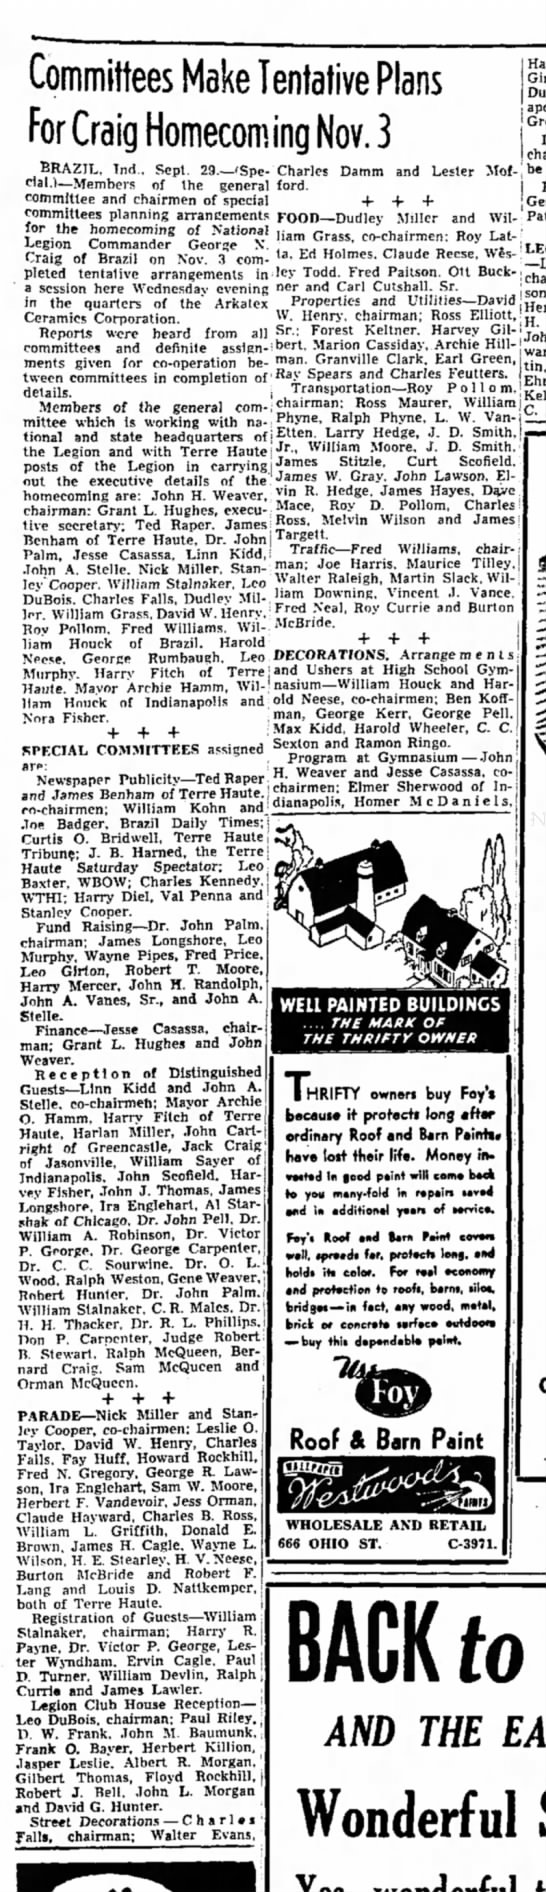 The Terre Haute Star